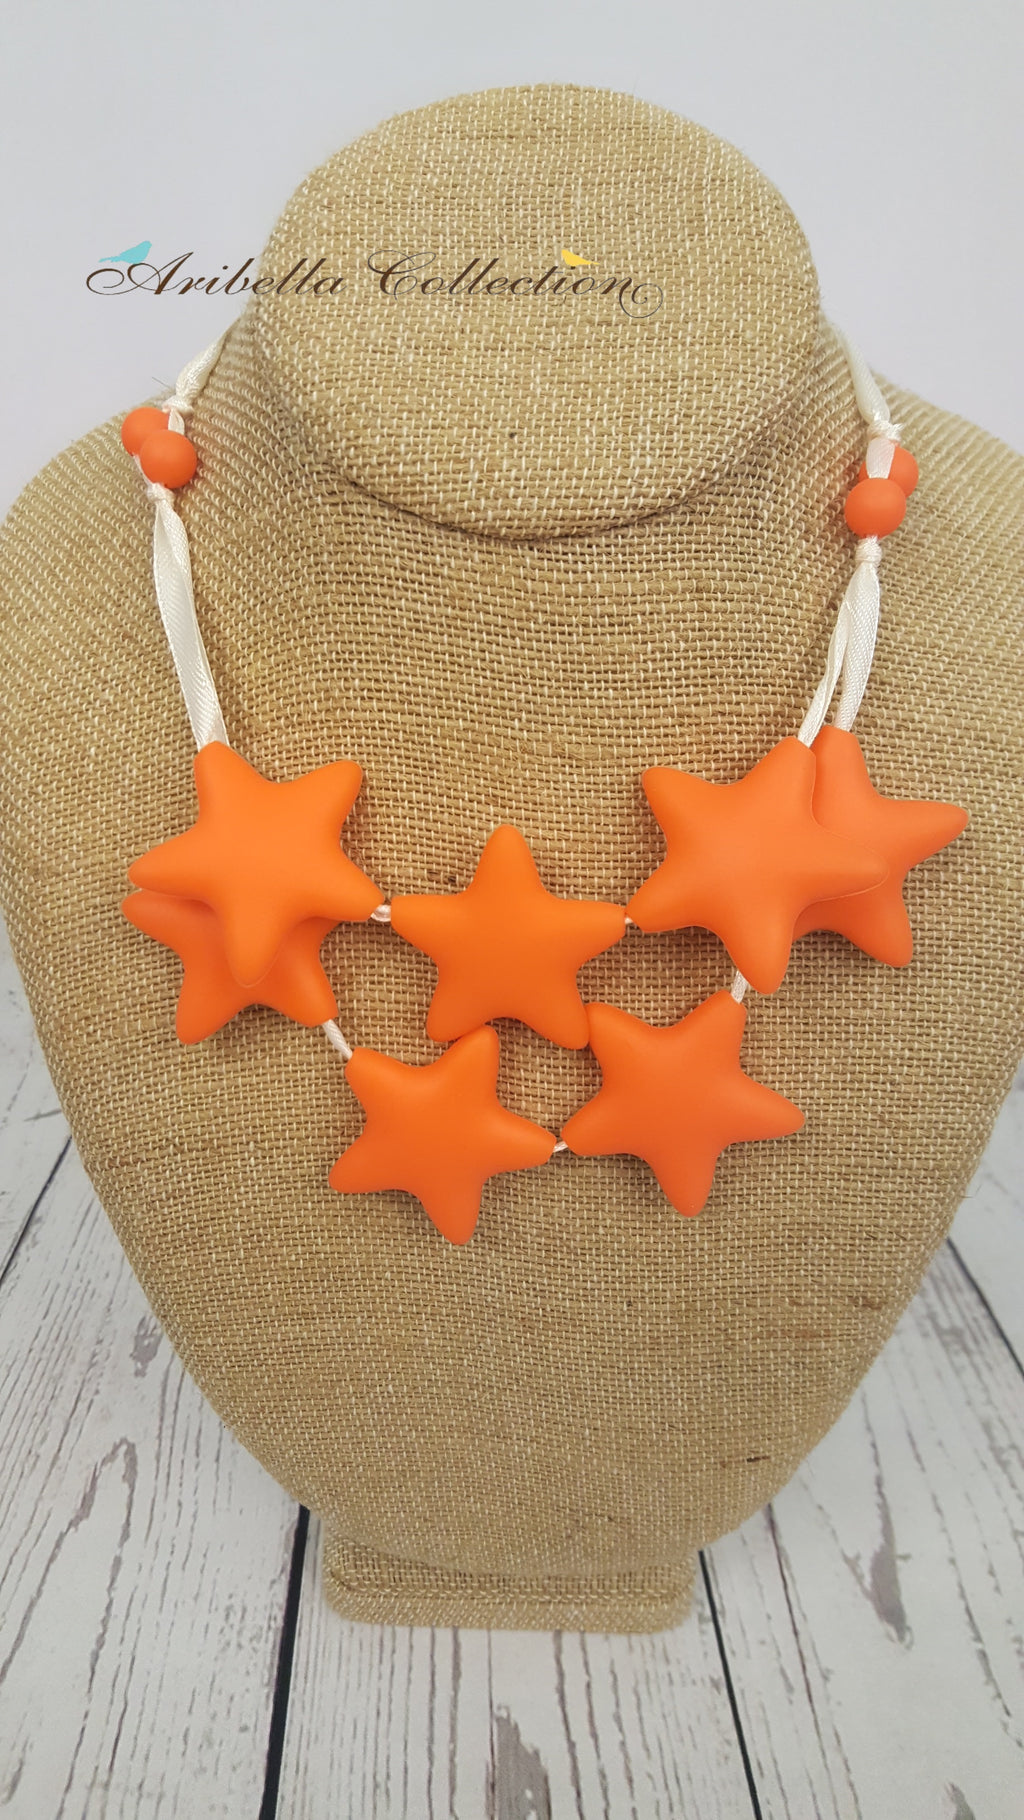 Silicone Necklace - 7 Orange Star - Aribella Collection